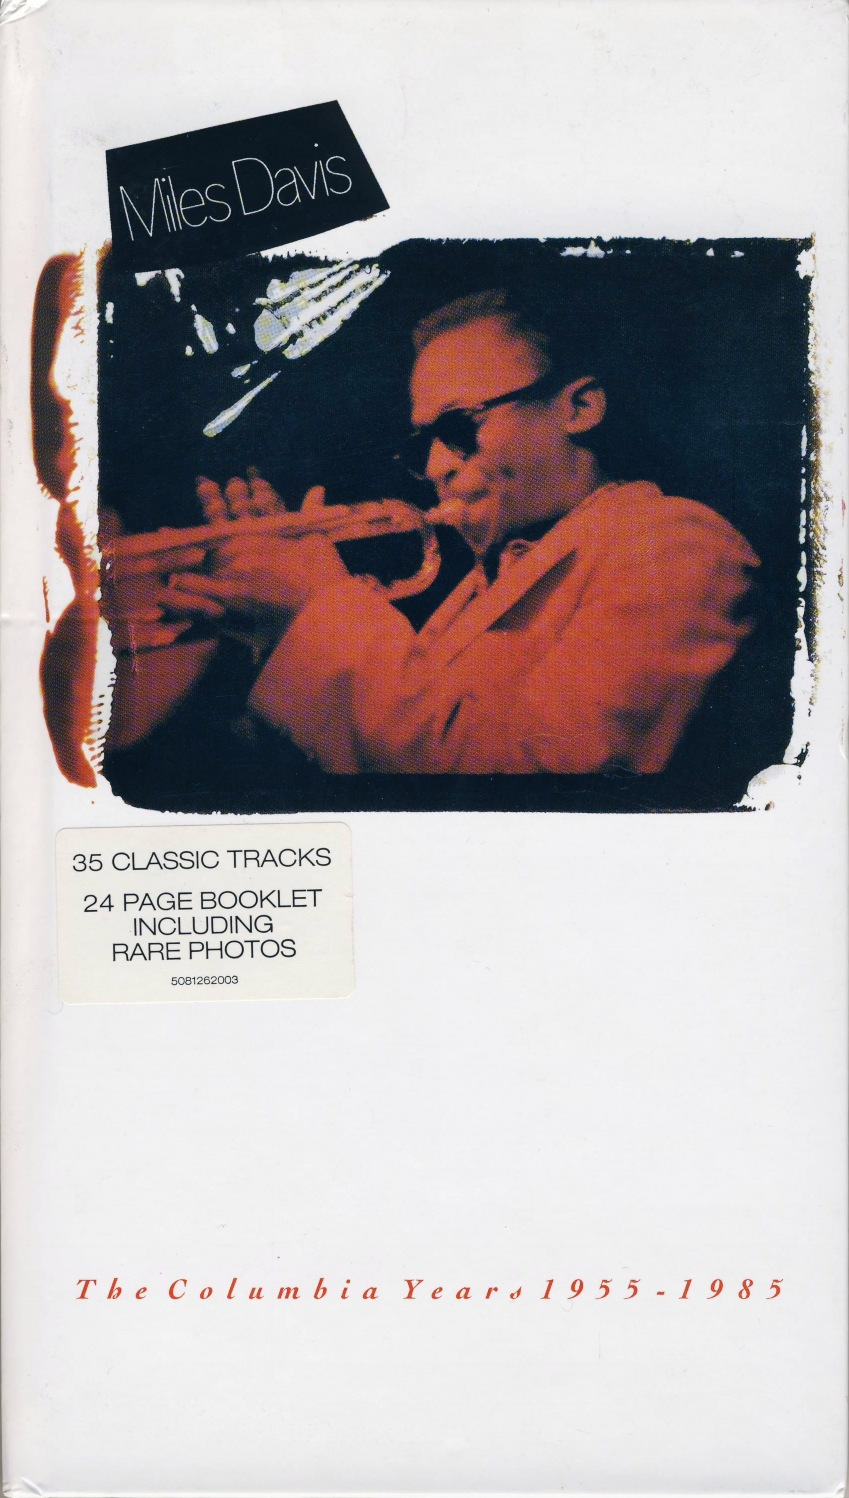 Miles Davis - The Columbia Years 1955-1985 (CD.2 of 4)